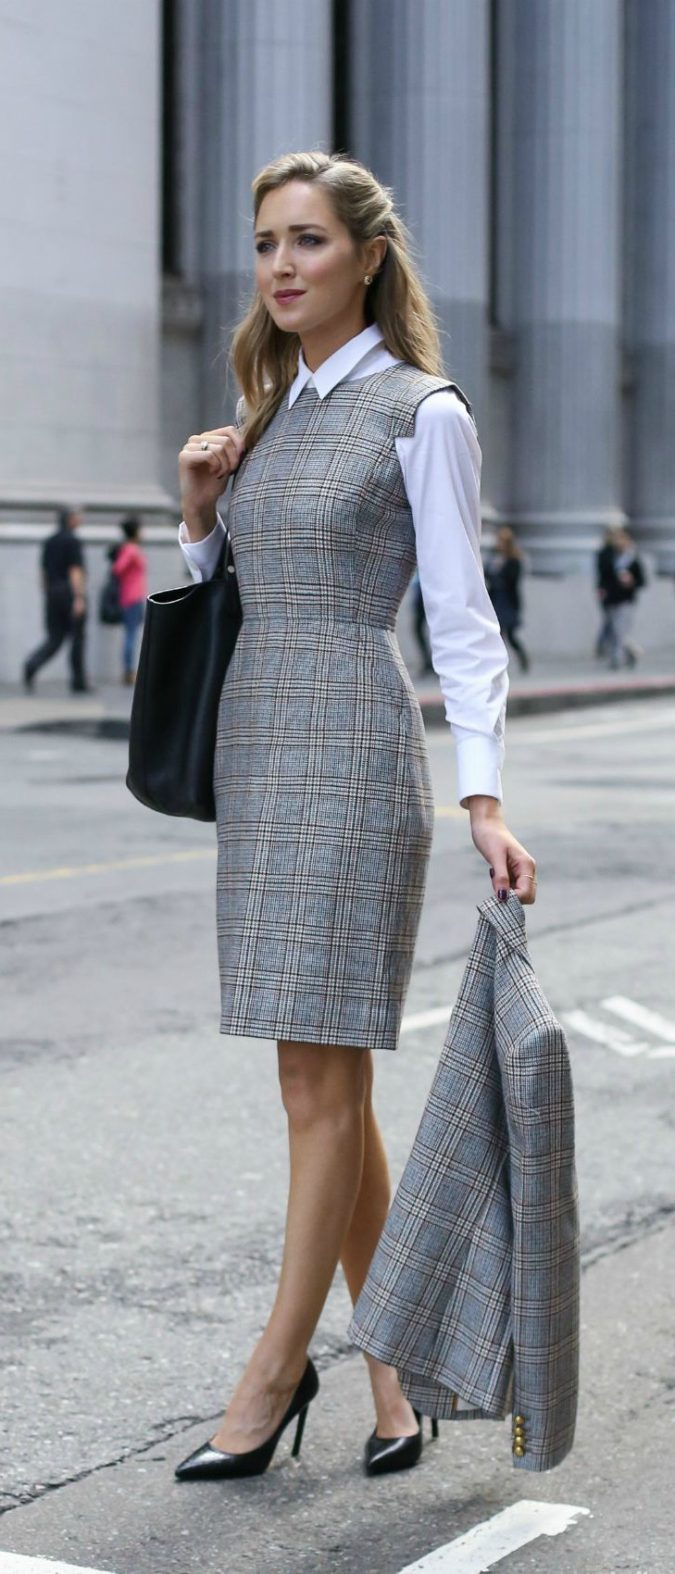 The-Grey-Dress.-e1597876664646-675x1574 +45 Stylish Women's Outfits for Job Interviews for 2021